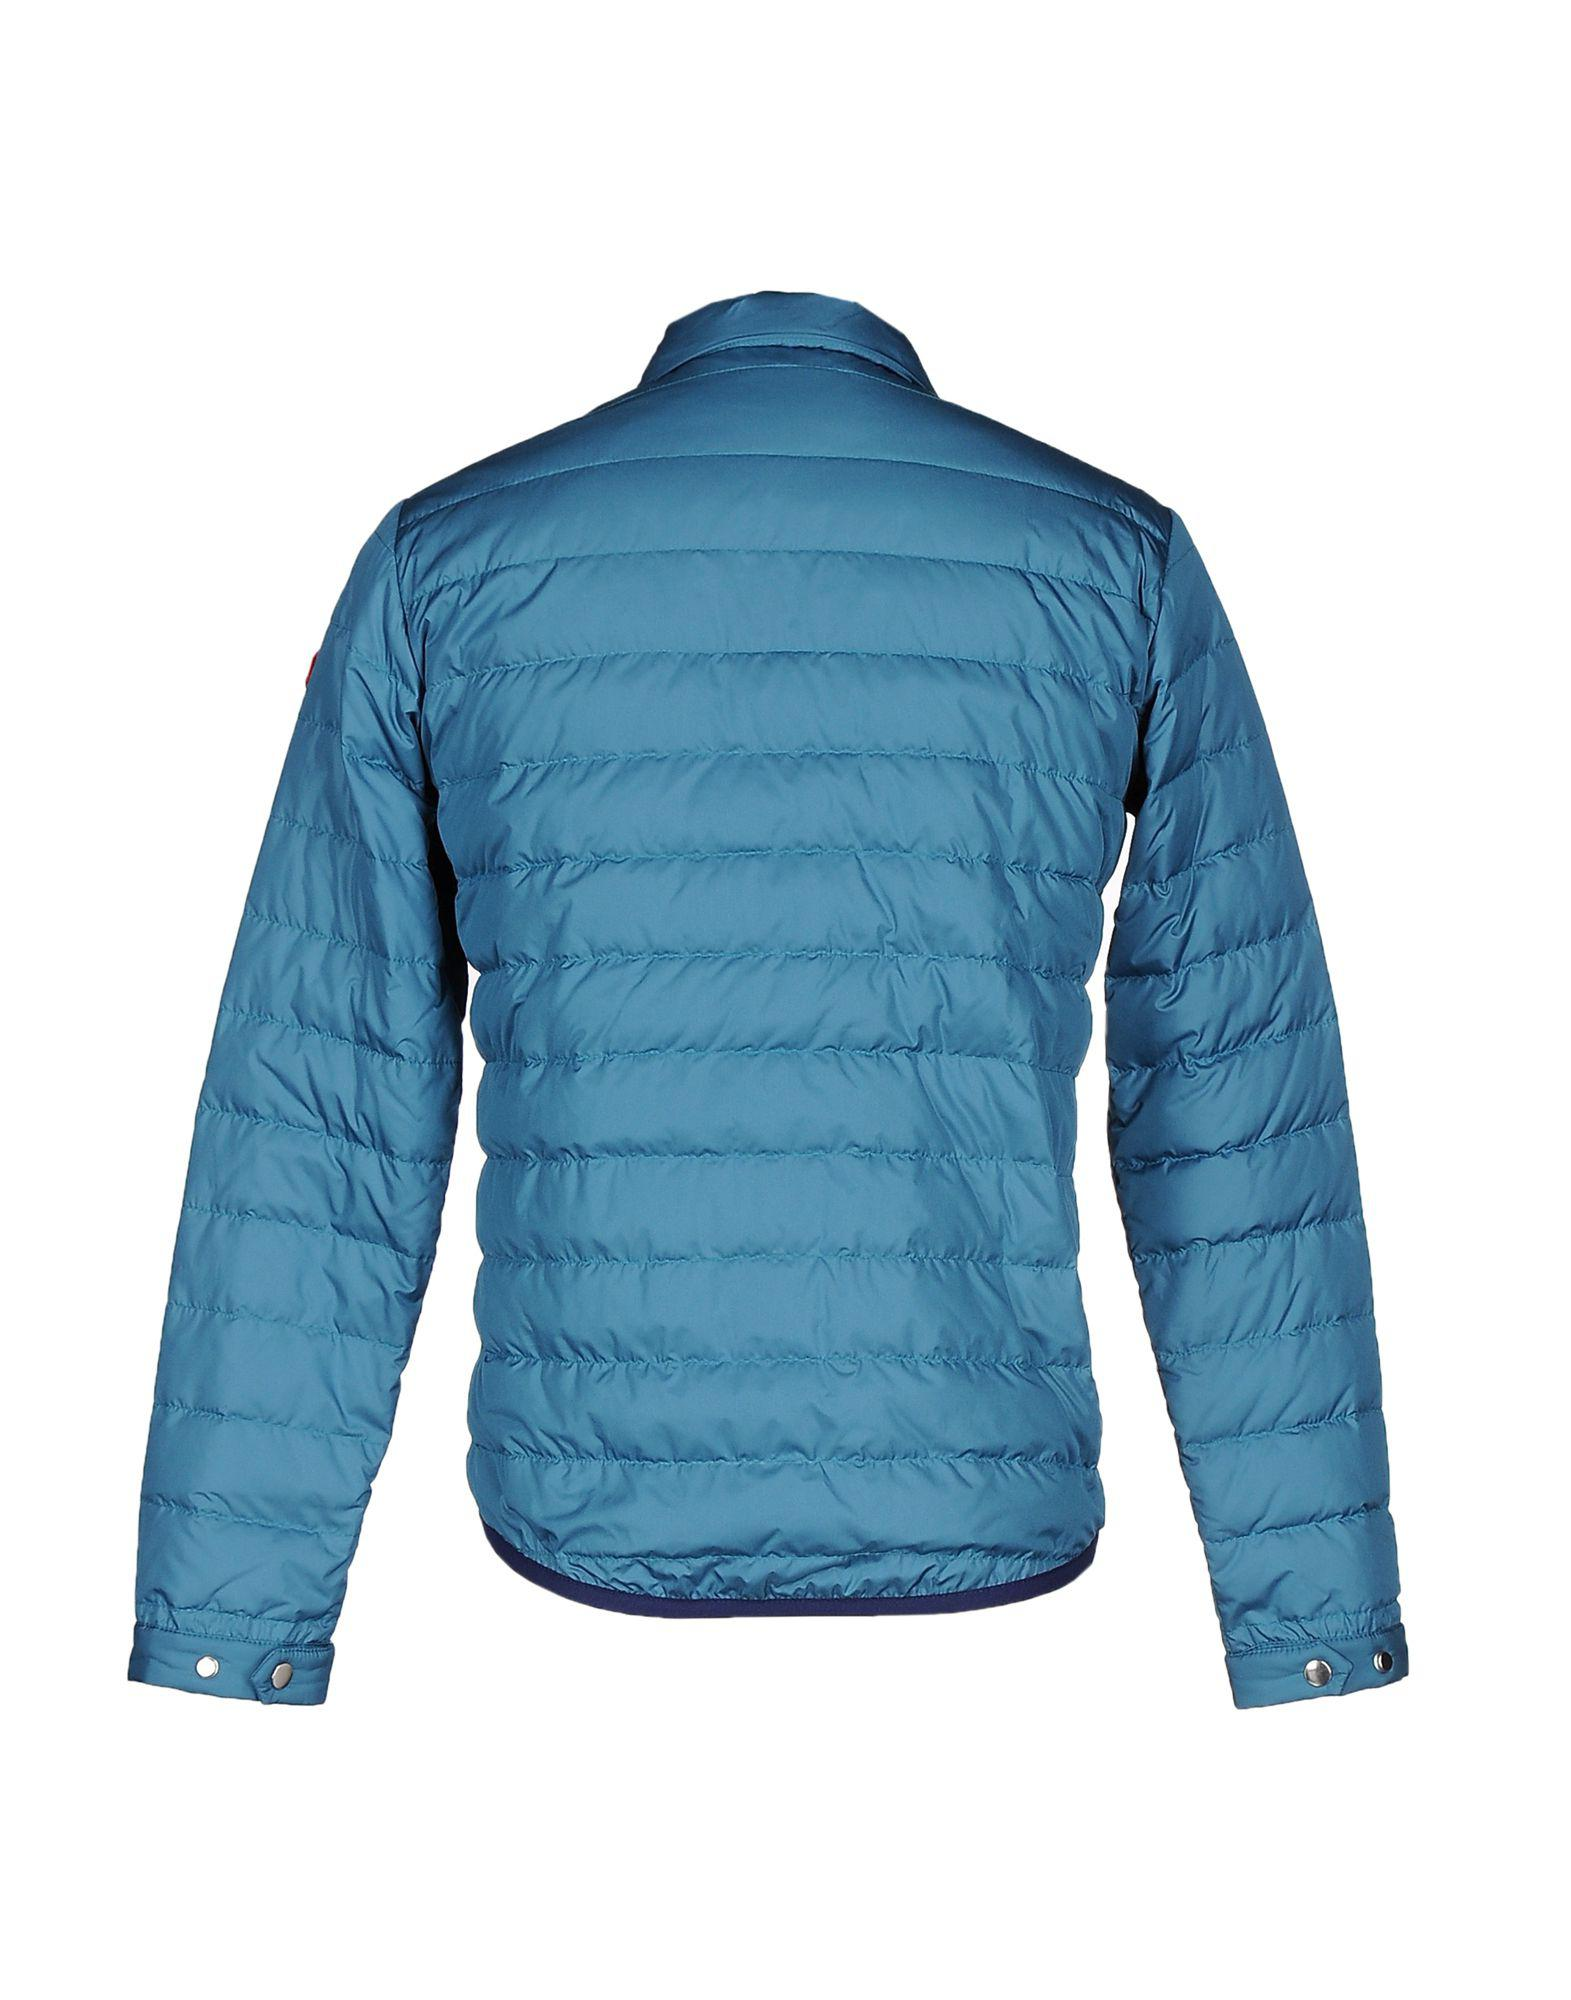 Stell Bayrem Goose Down Jacket in Deep Jade (Blue) for Men